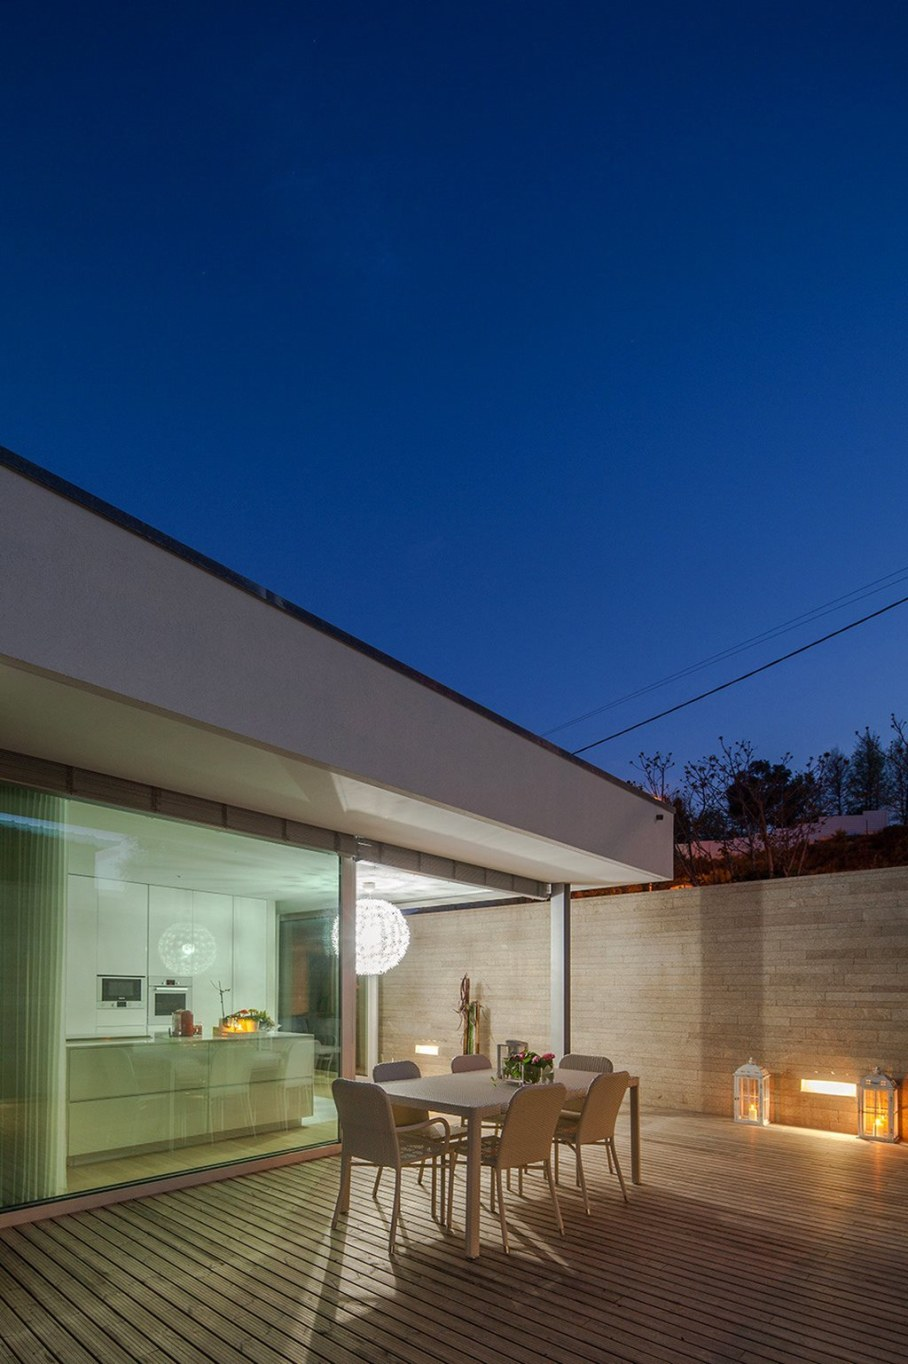 Cozy House For A Family With Children In Portugal - Outdoor terrace 9